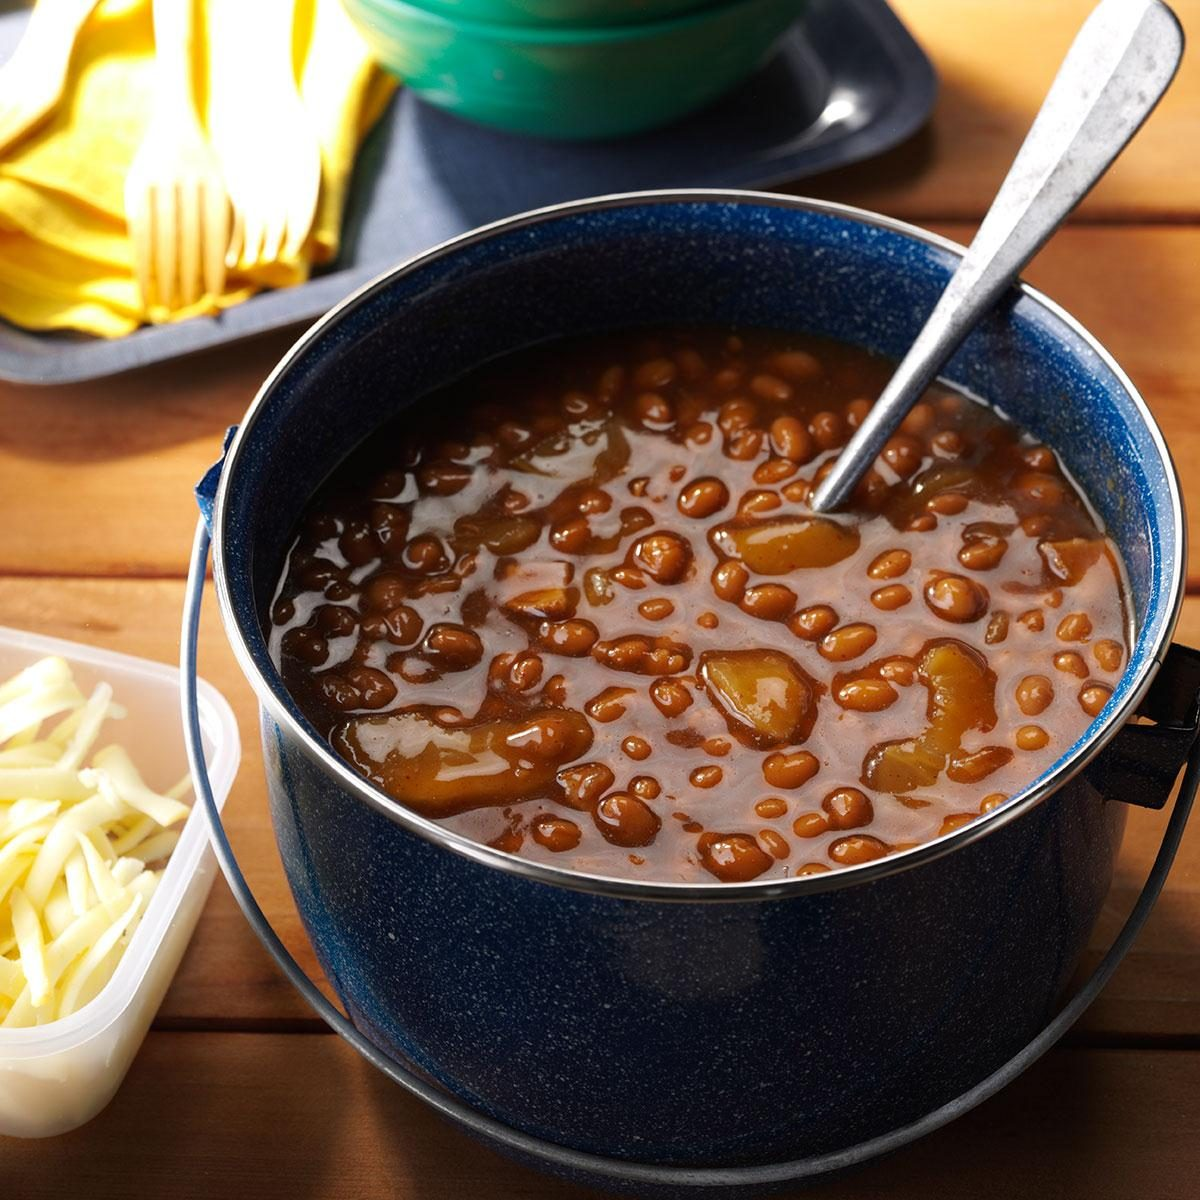 45 Easy Camping Recipes: Root Beer Apple Baked Beans Recipe